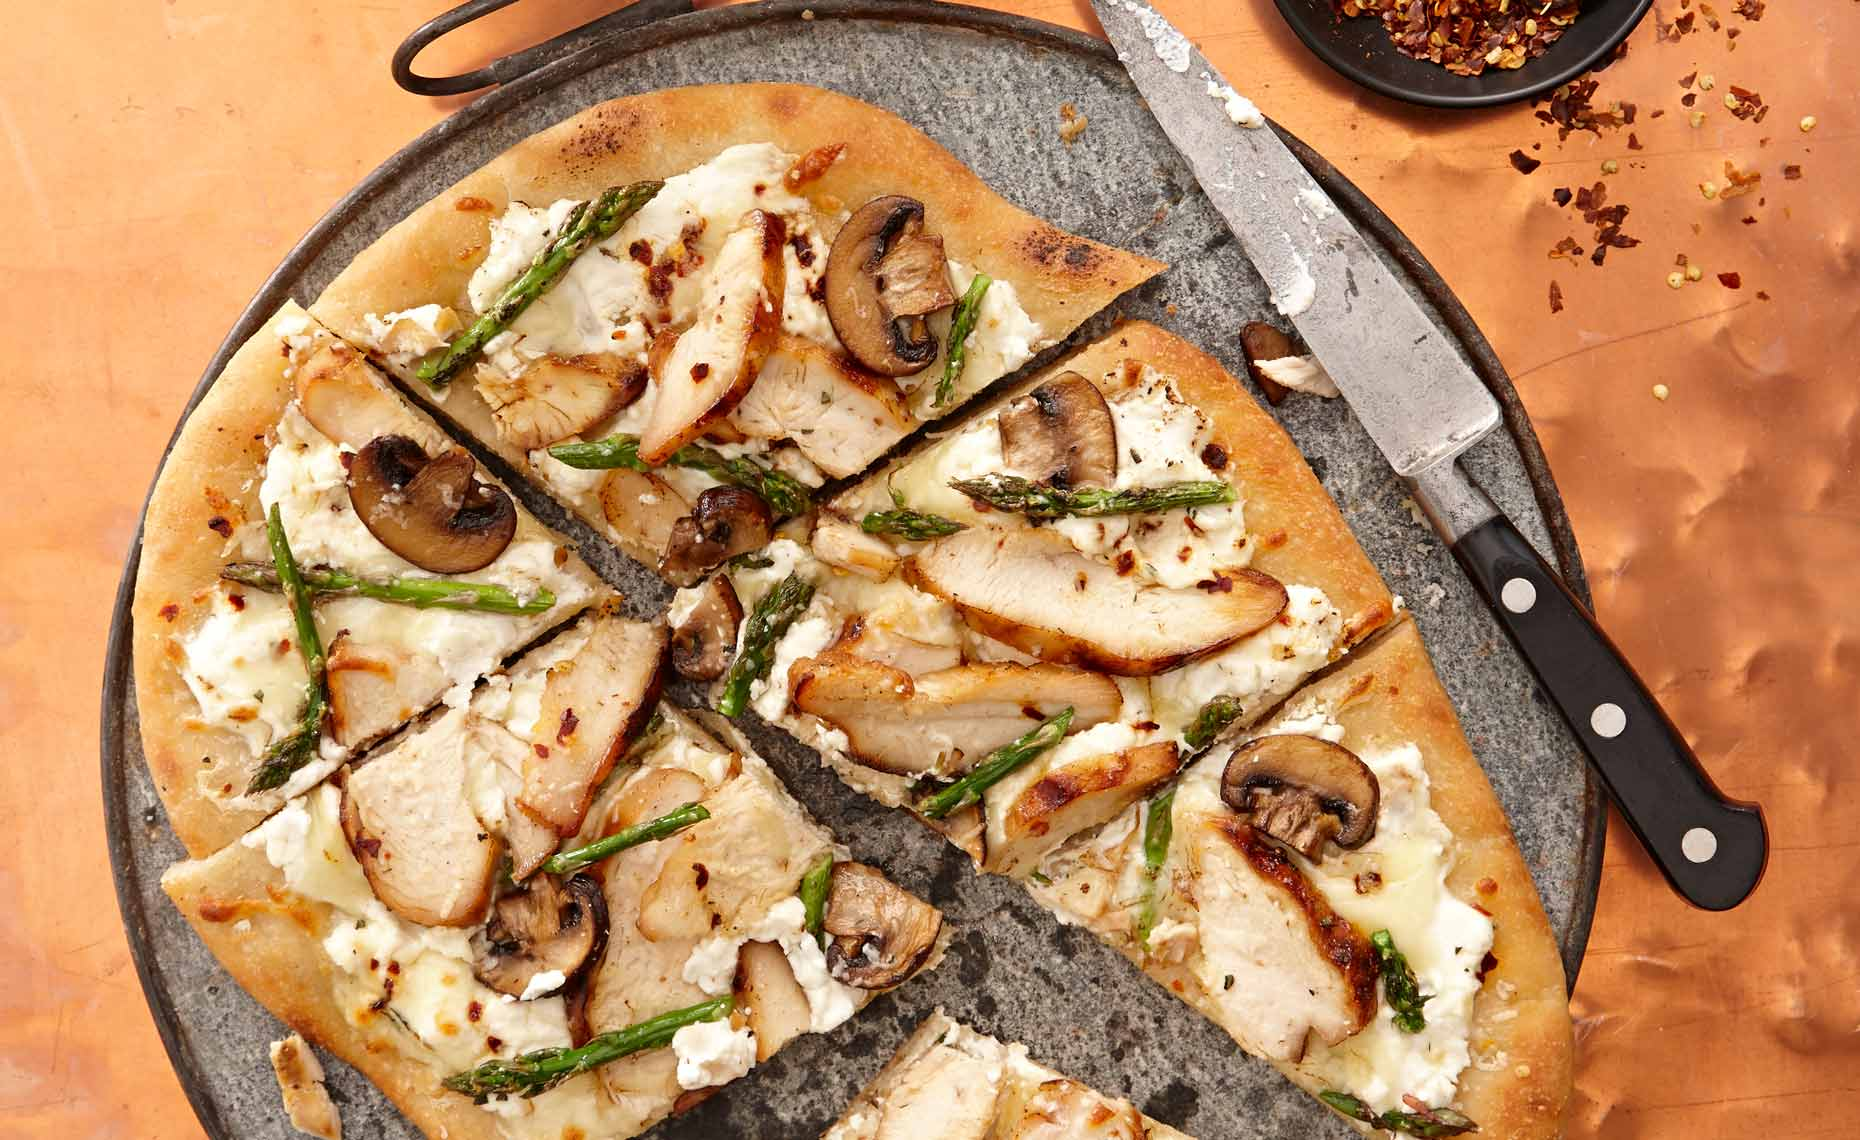 baltimore-food-photographers-pizza-mushroom-04